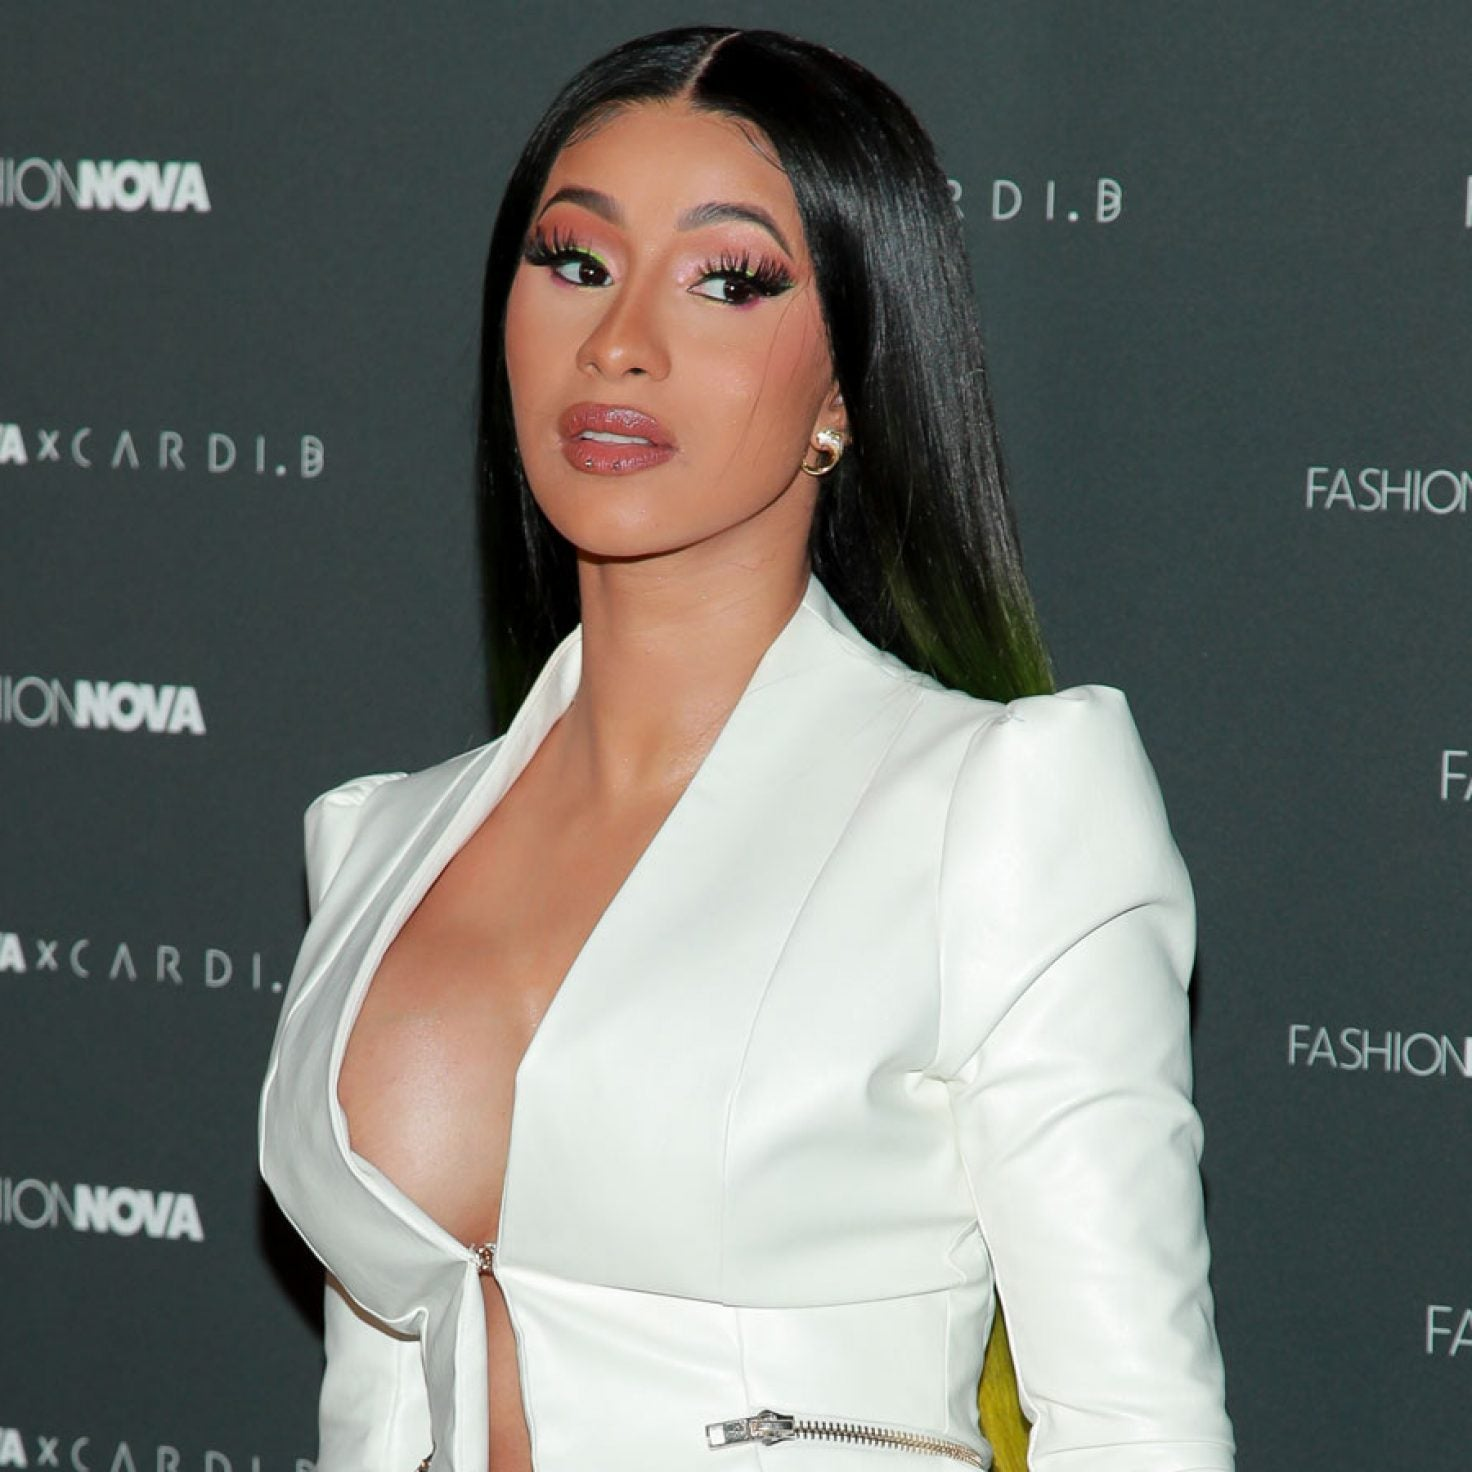 Fashion Nova And Cardi B Partner Up To Help People Impacted By Covid-19